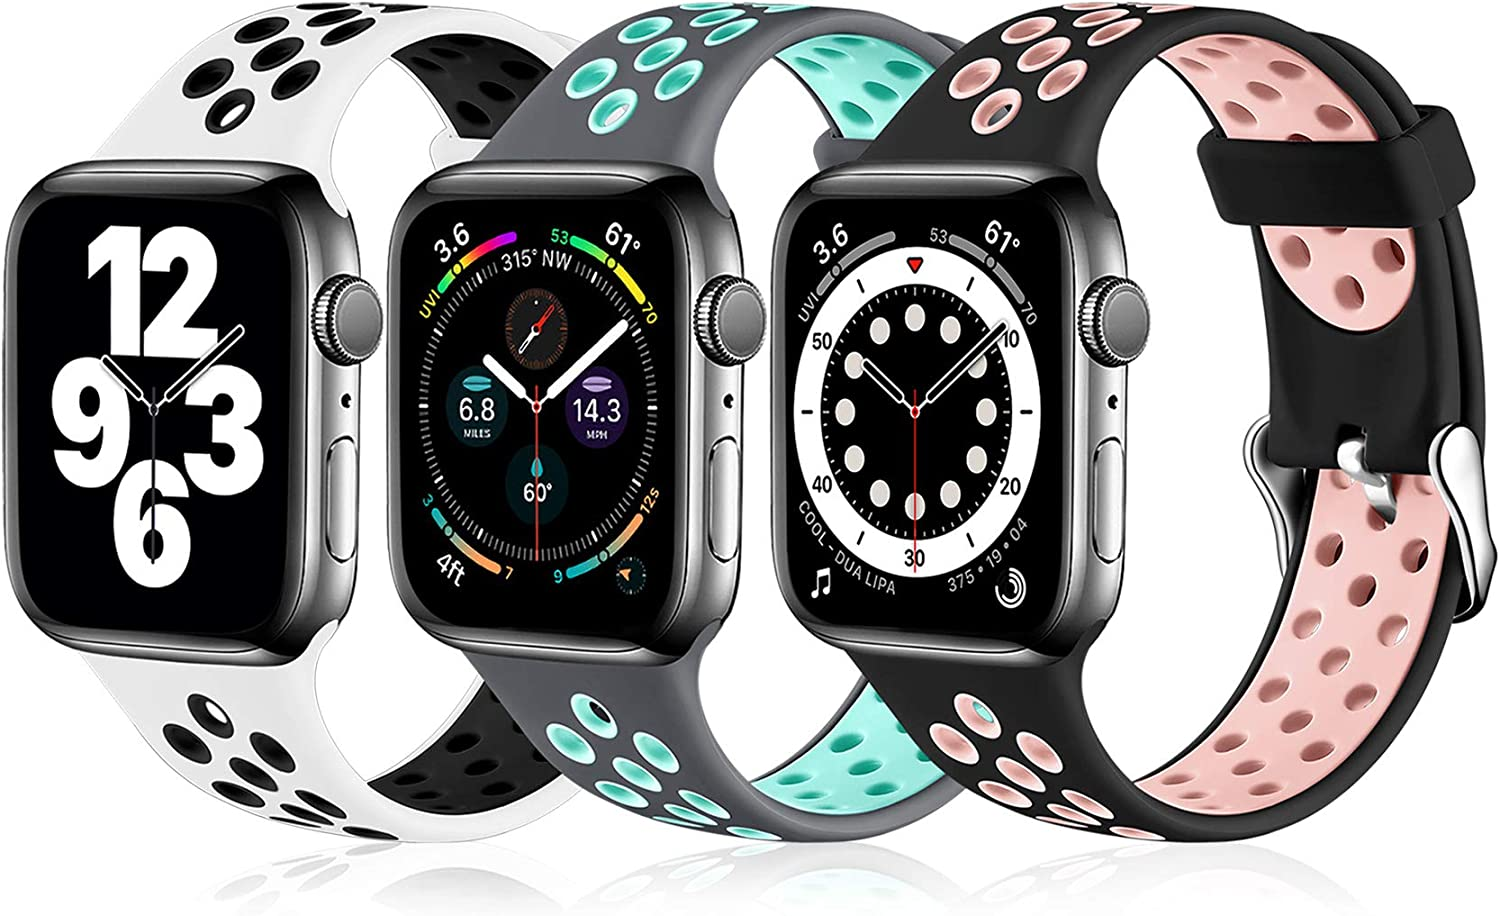 Ouwegaga Compatible for Apple Watch Bands 40mm 38mm Soft Silicone Breathable Air Holes Sport Bands for iWatch Series 6 5 4 3 2 1 SE Women Men Black/Pink White/Black Gray/Teal S/M 3 Pack